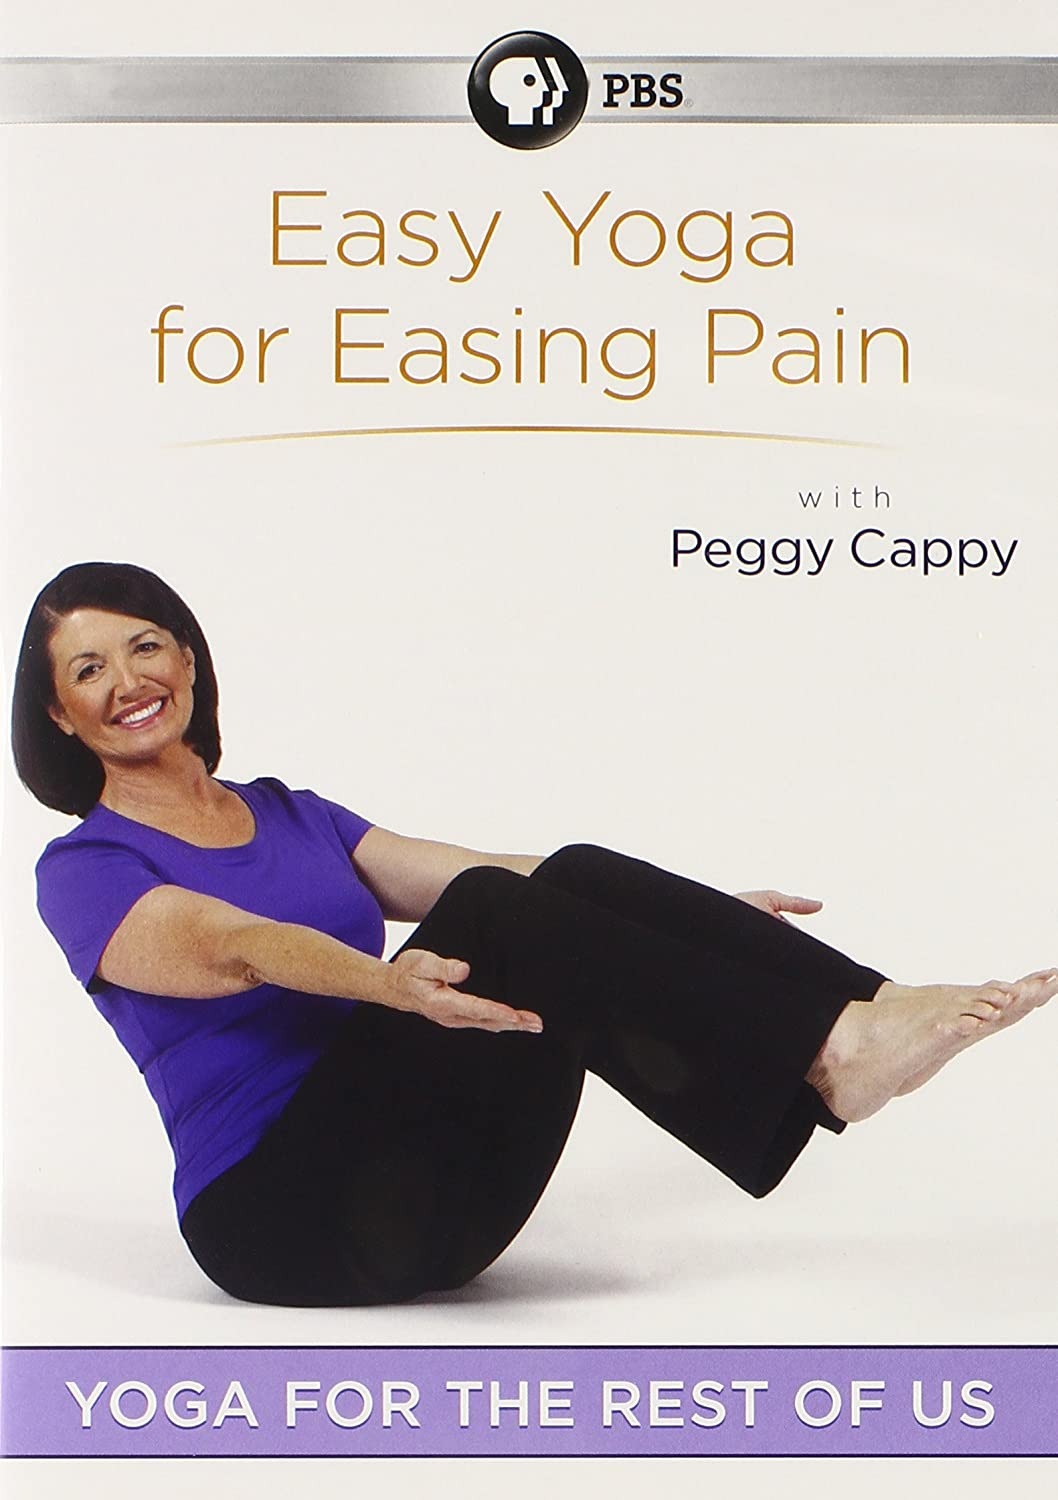 Yoga for the Rest of Us: Easy Yoga for Easing Pain with Peggy Cappy (2012) Peggy Cappy (Actor), . (Director) | Rated: NR | Format: DVD